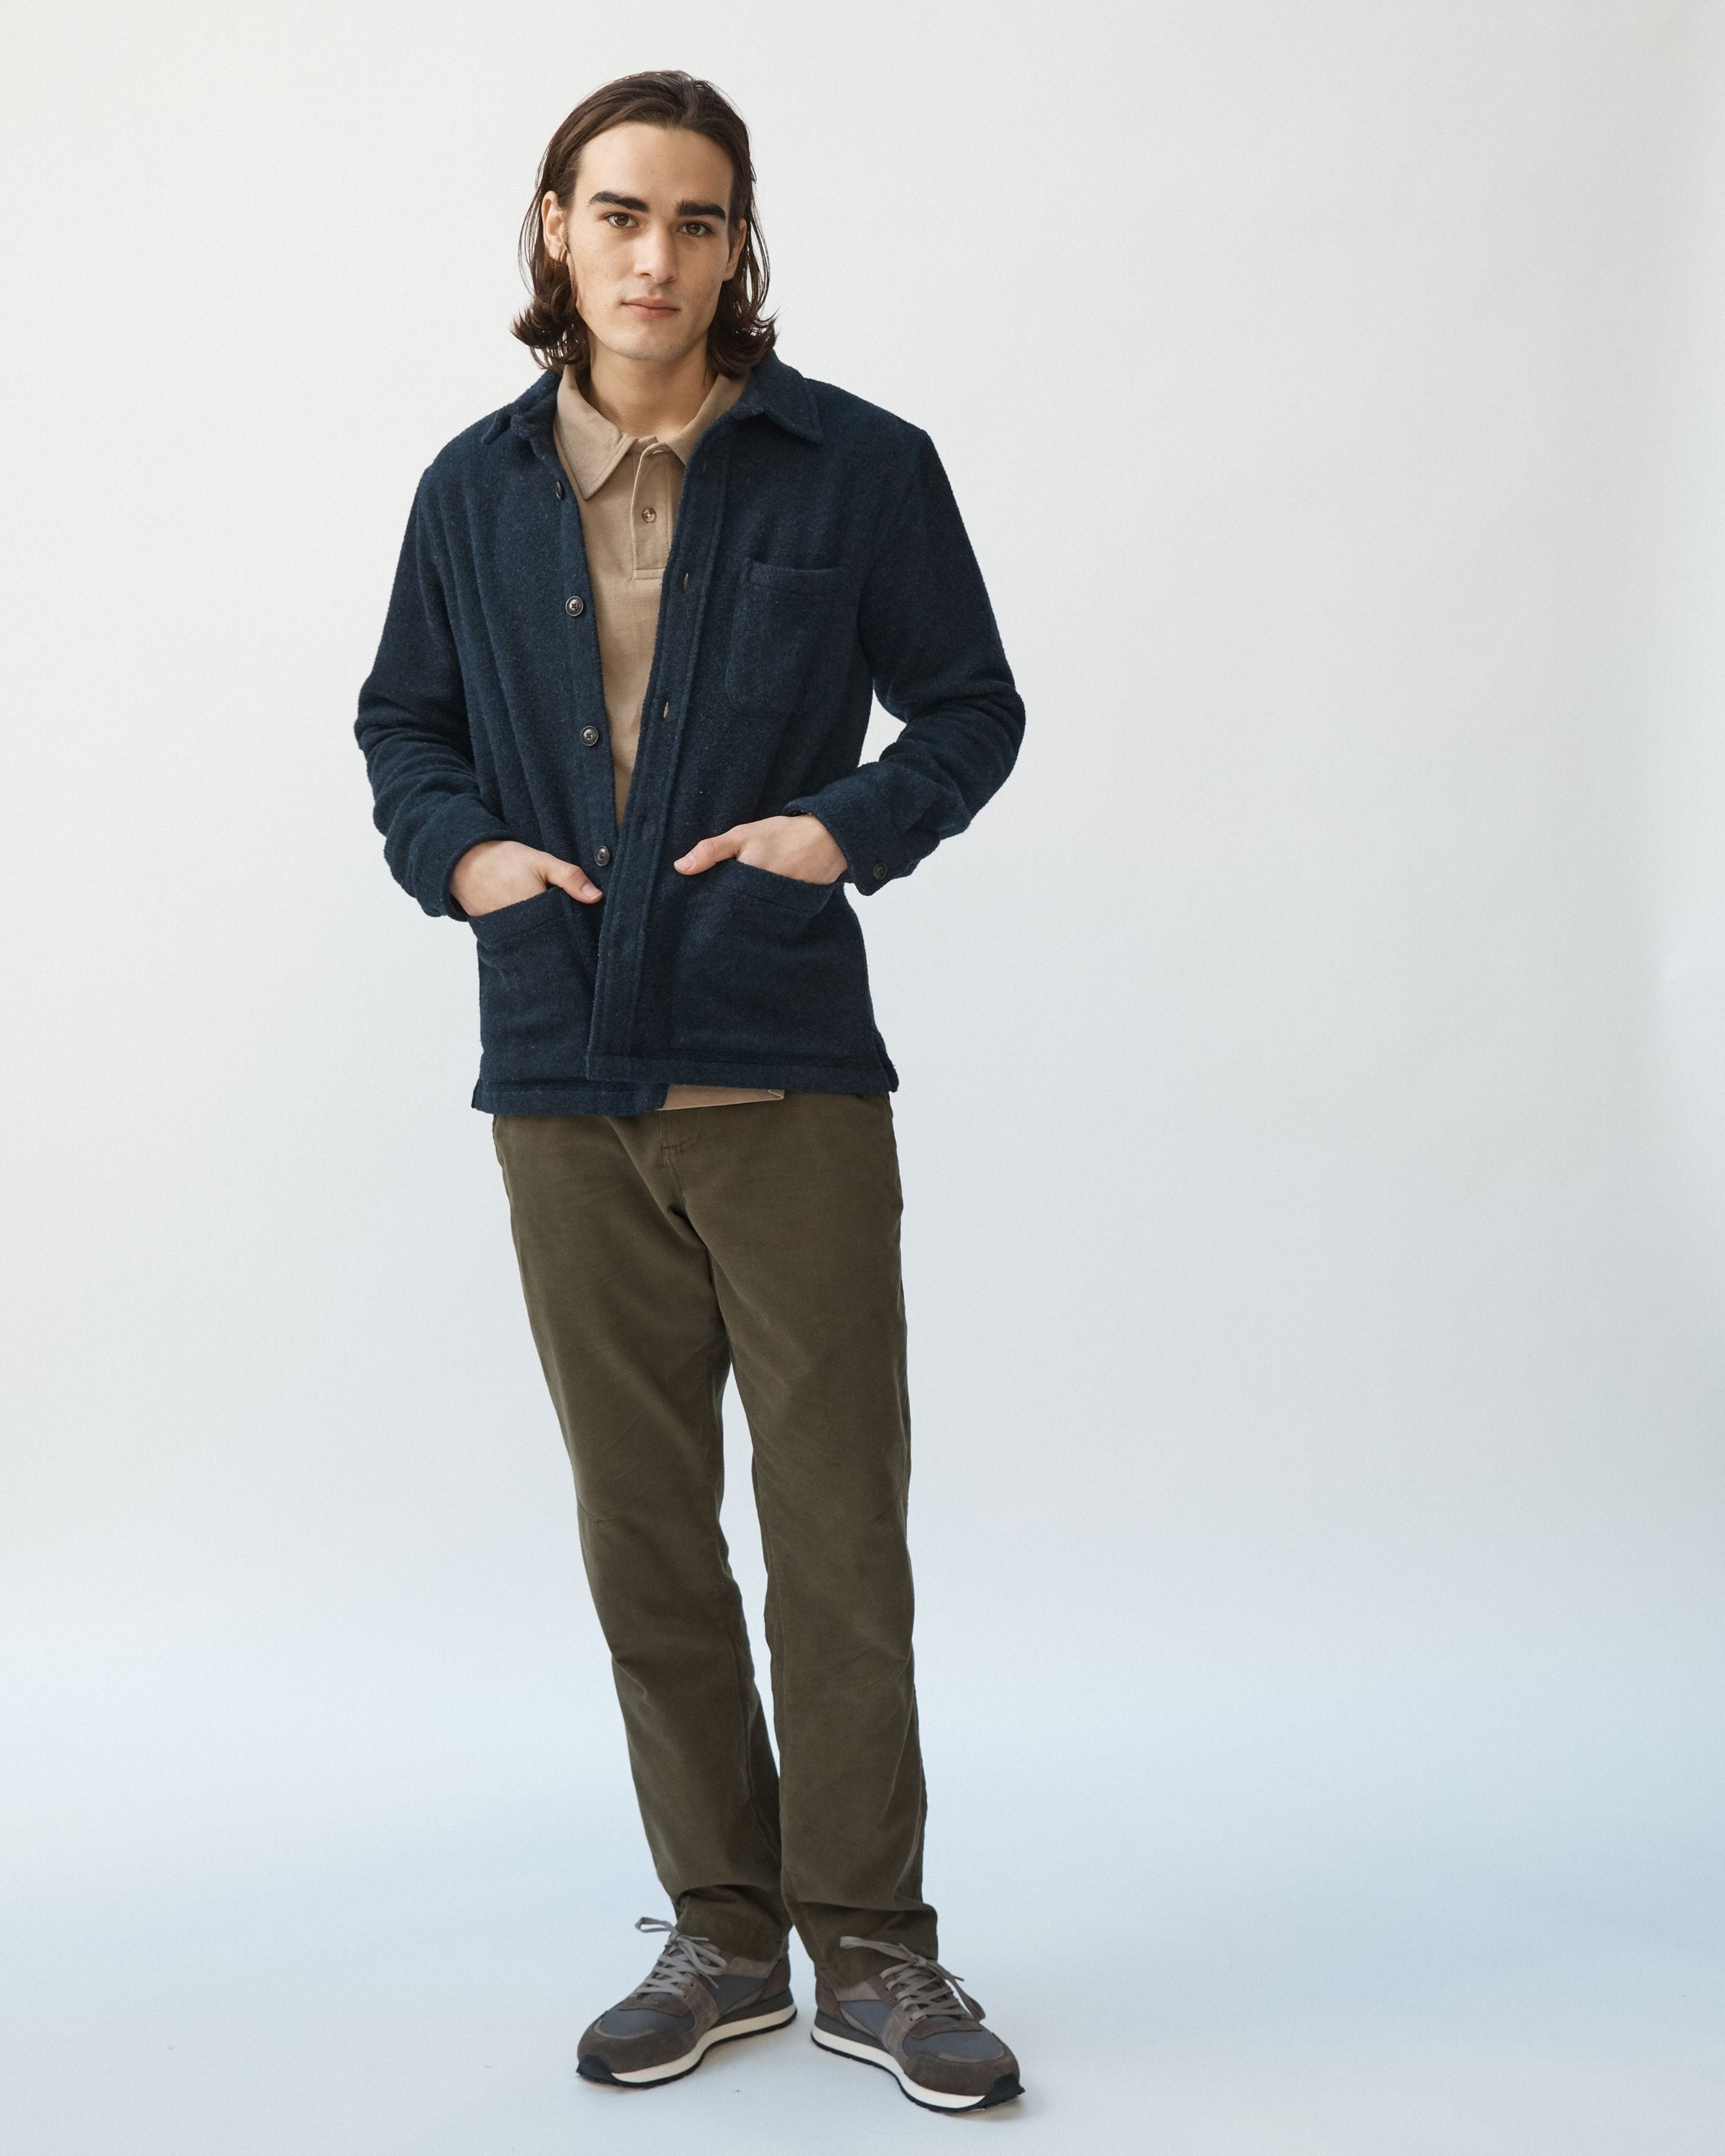 Lambswool (18oz) Jacket - Navy